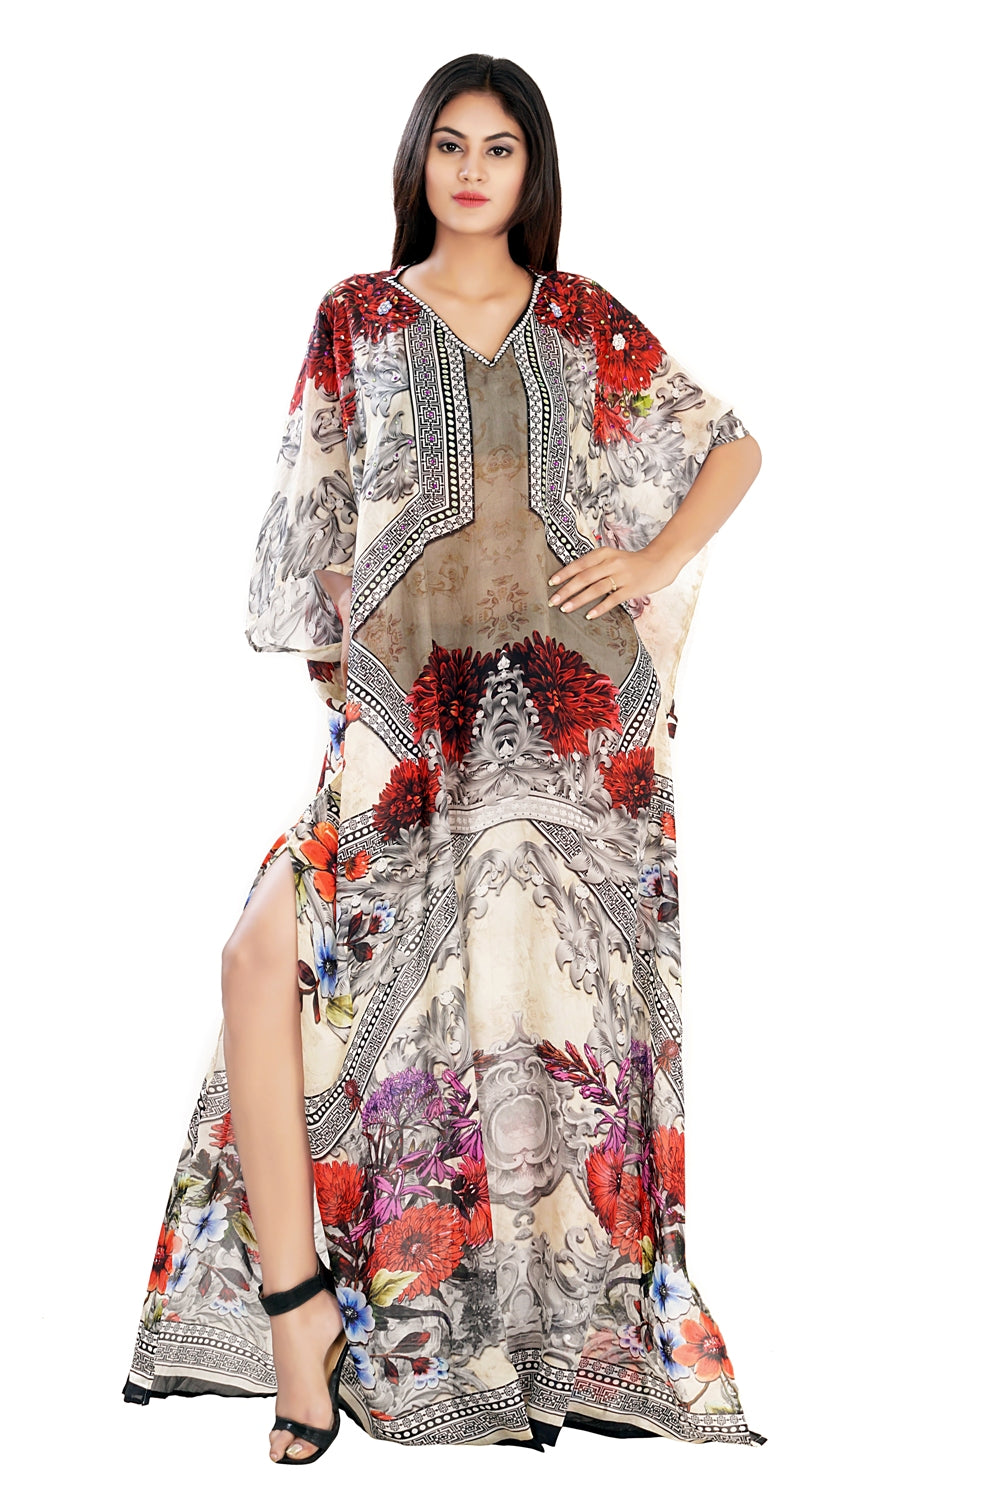 Odorous Feel Abstract Floral Print on Plus Size Silk Kaftan with exceptional color vacation beach outfits - Silk kaftan